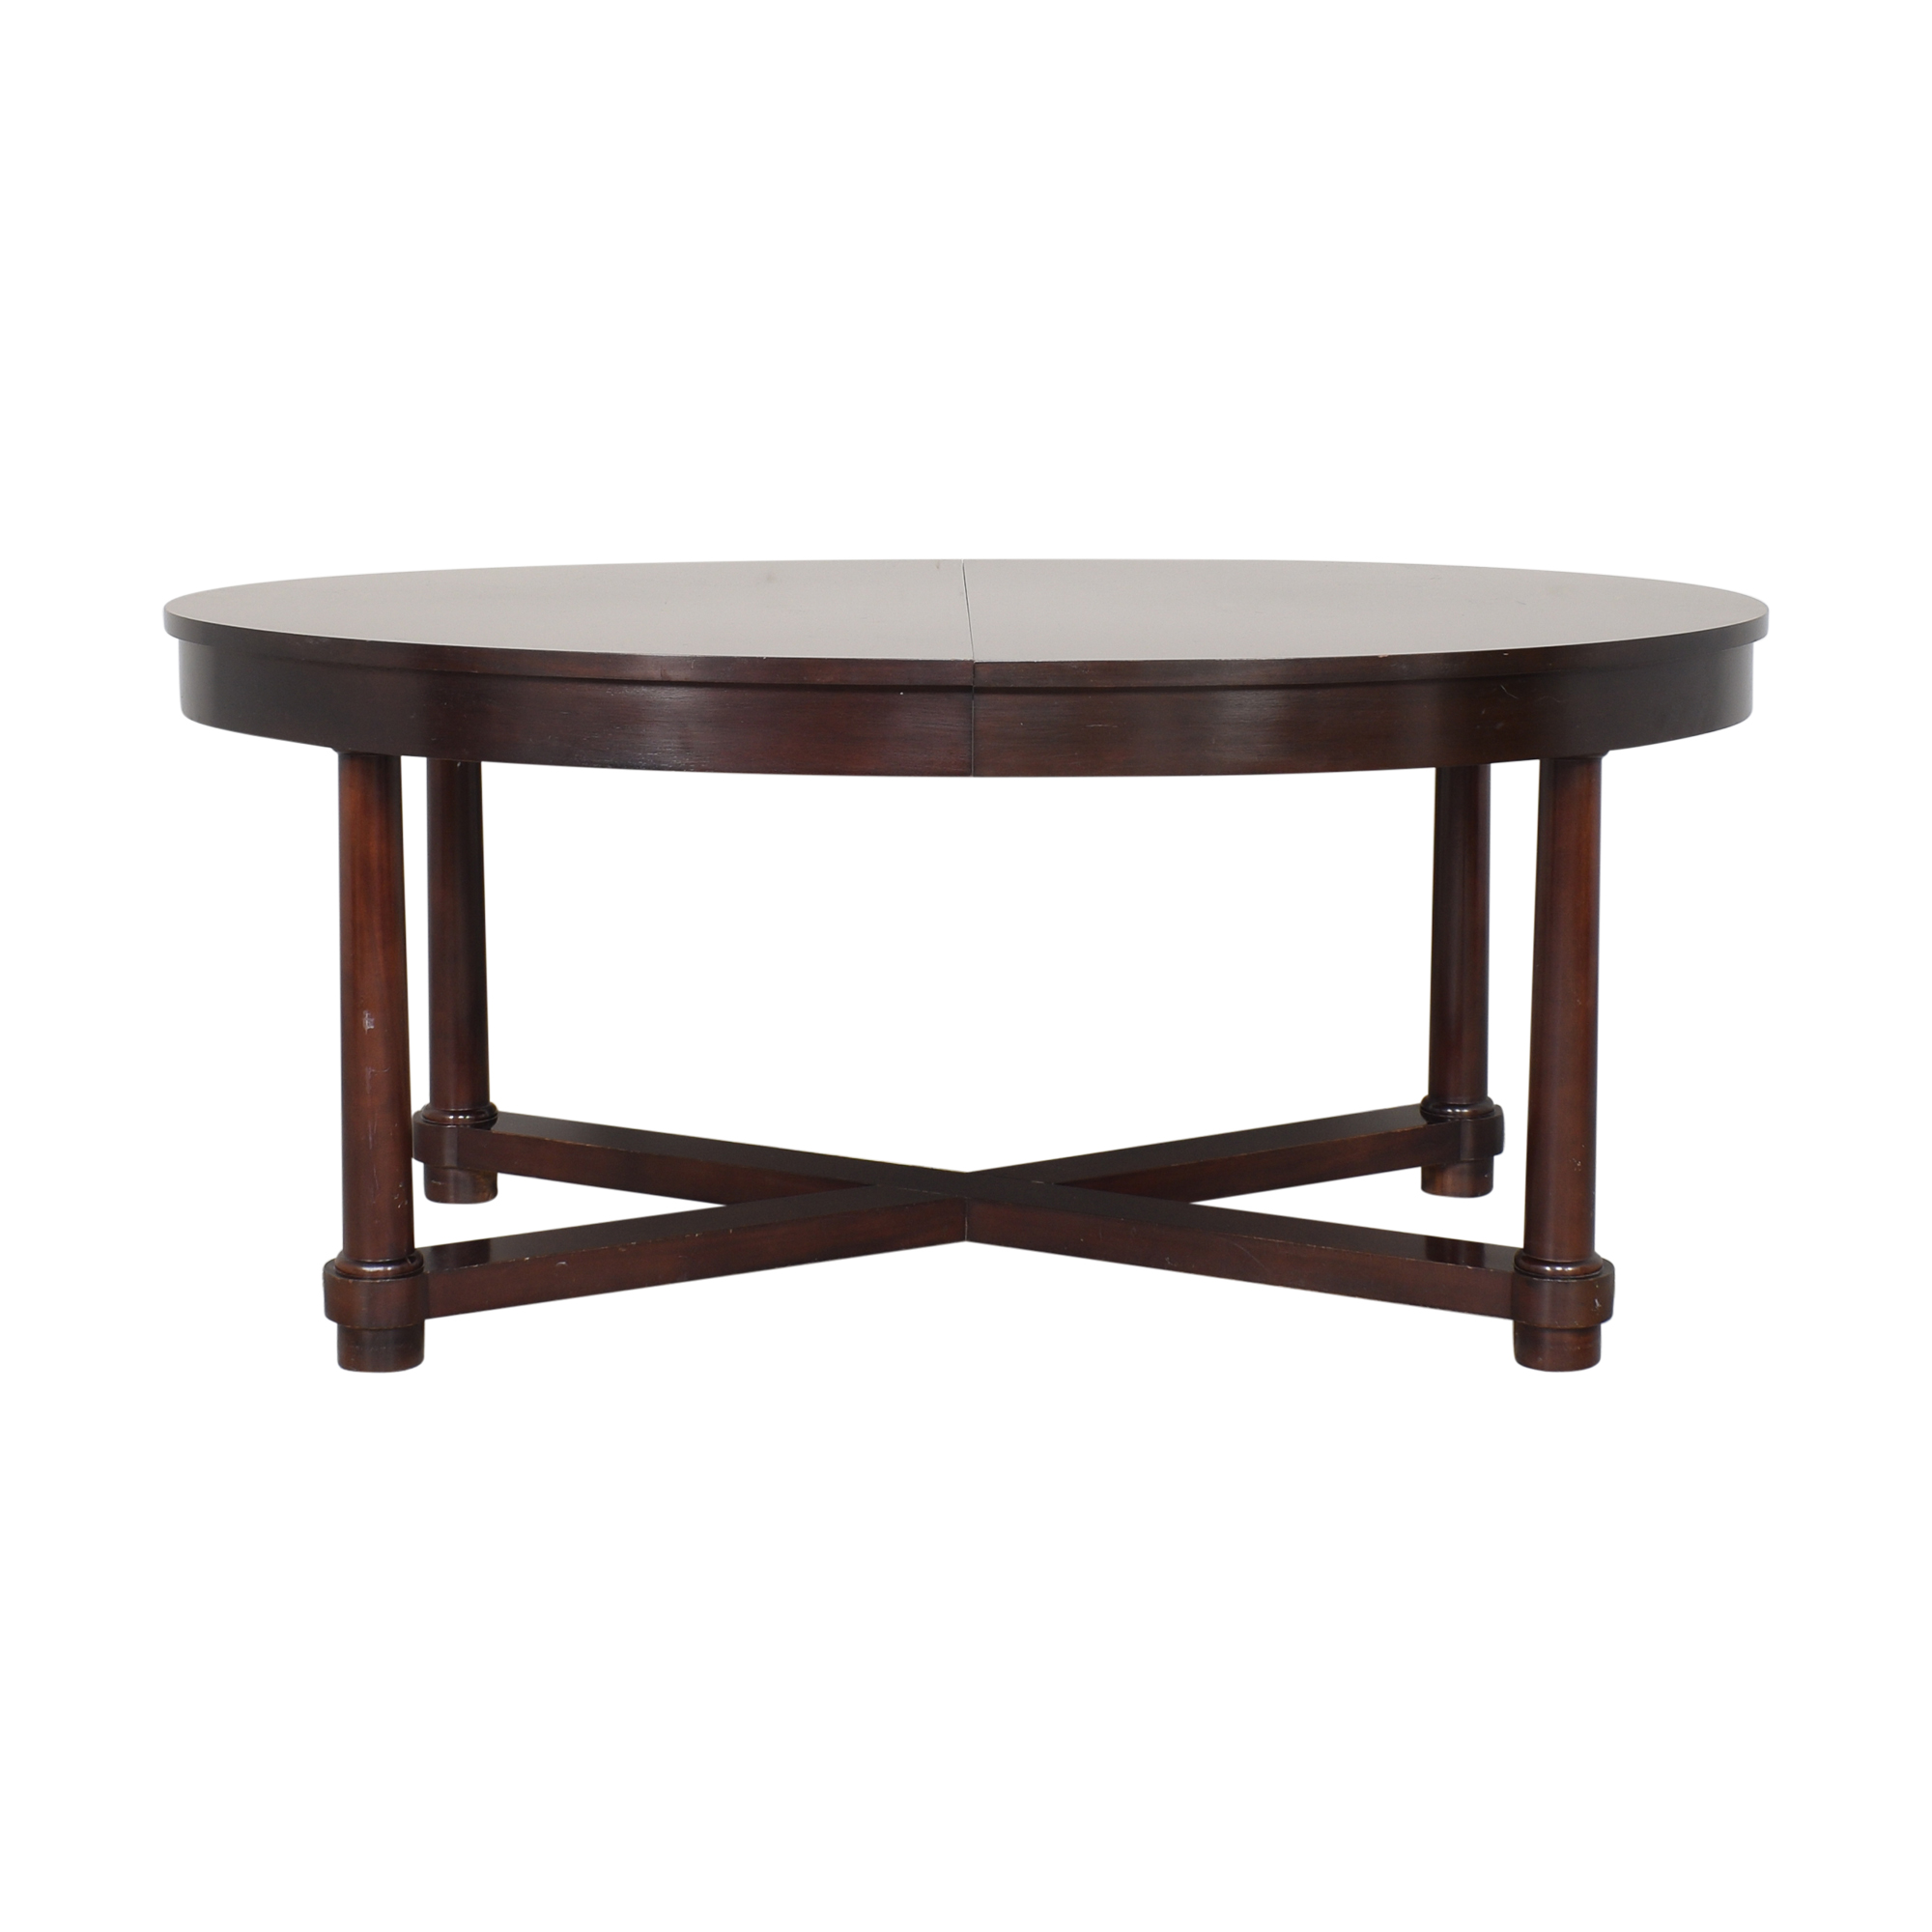 Baker Furniture Baker Furniture Barbara Barry Extendable Dining Table